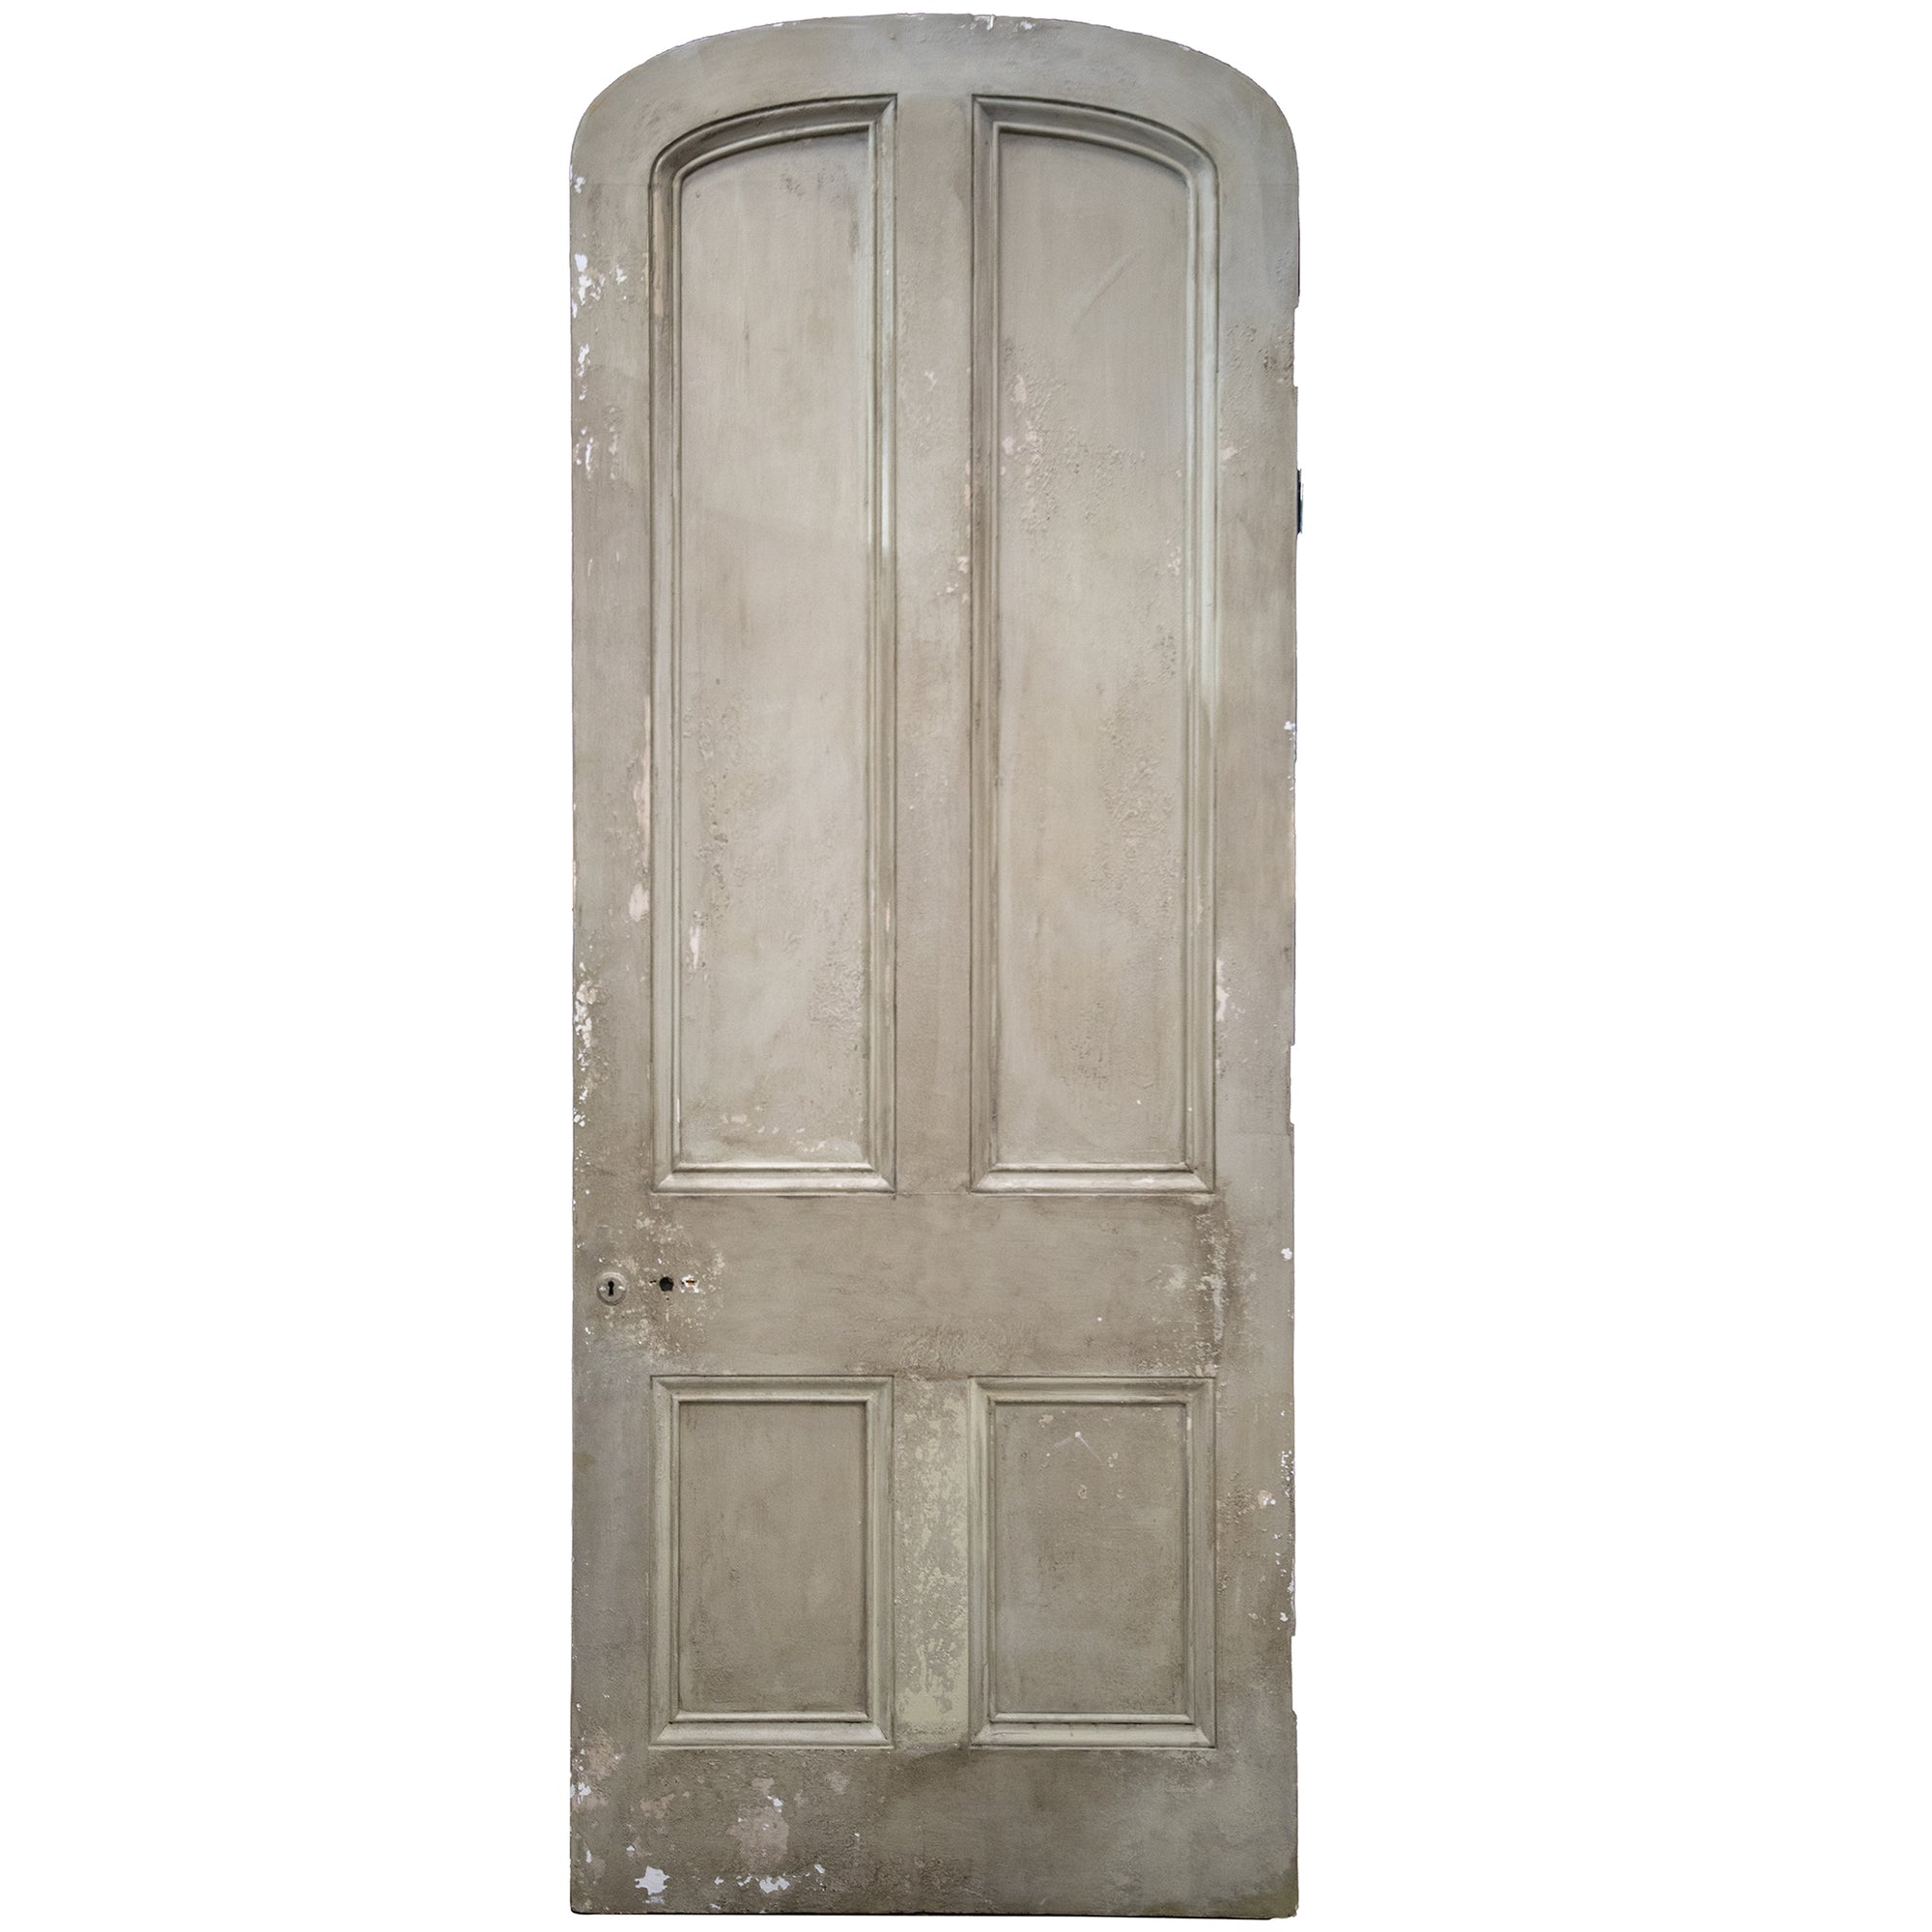 Antique Victorian Arched Door - 248cm x 98.5cm